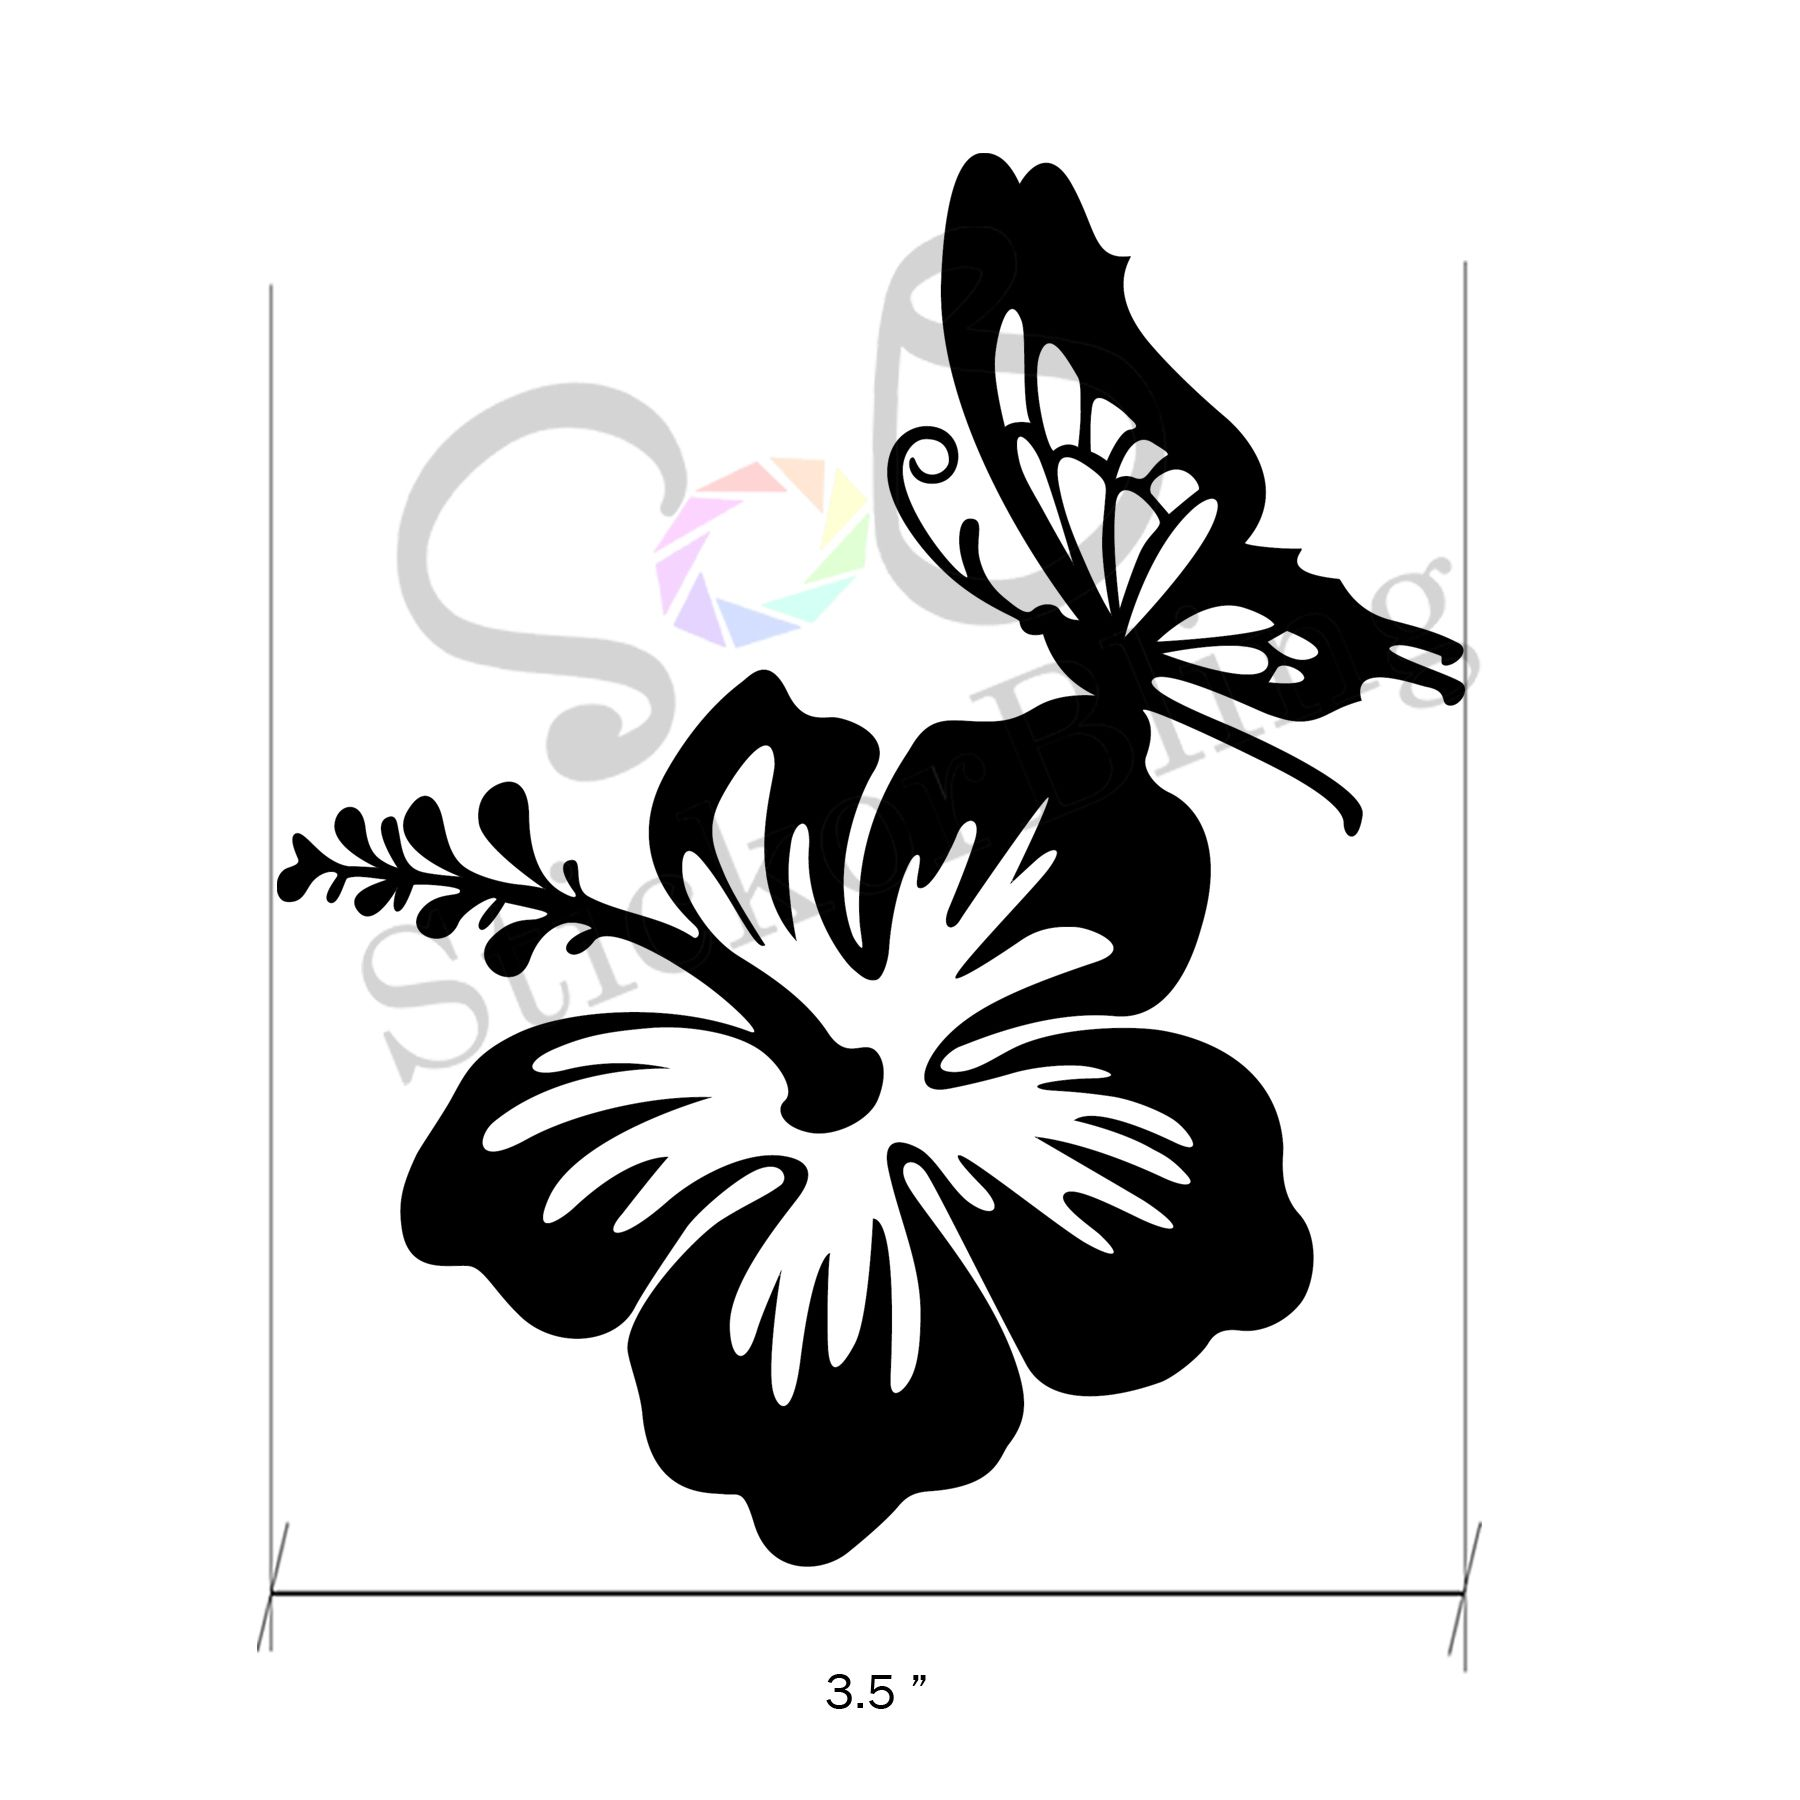 Hawaiian hibiscus flower butterfly vinyl decal sticker car window hawaiian hibiscus flower butterfly vinyl decal sticker car window bumper computer izmirmasajfo